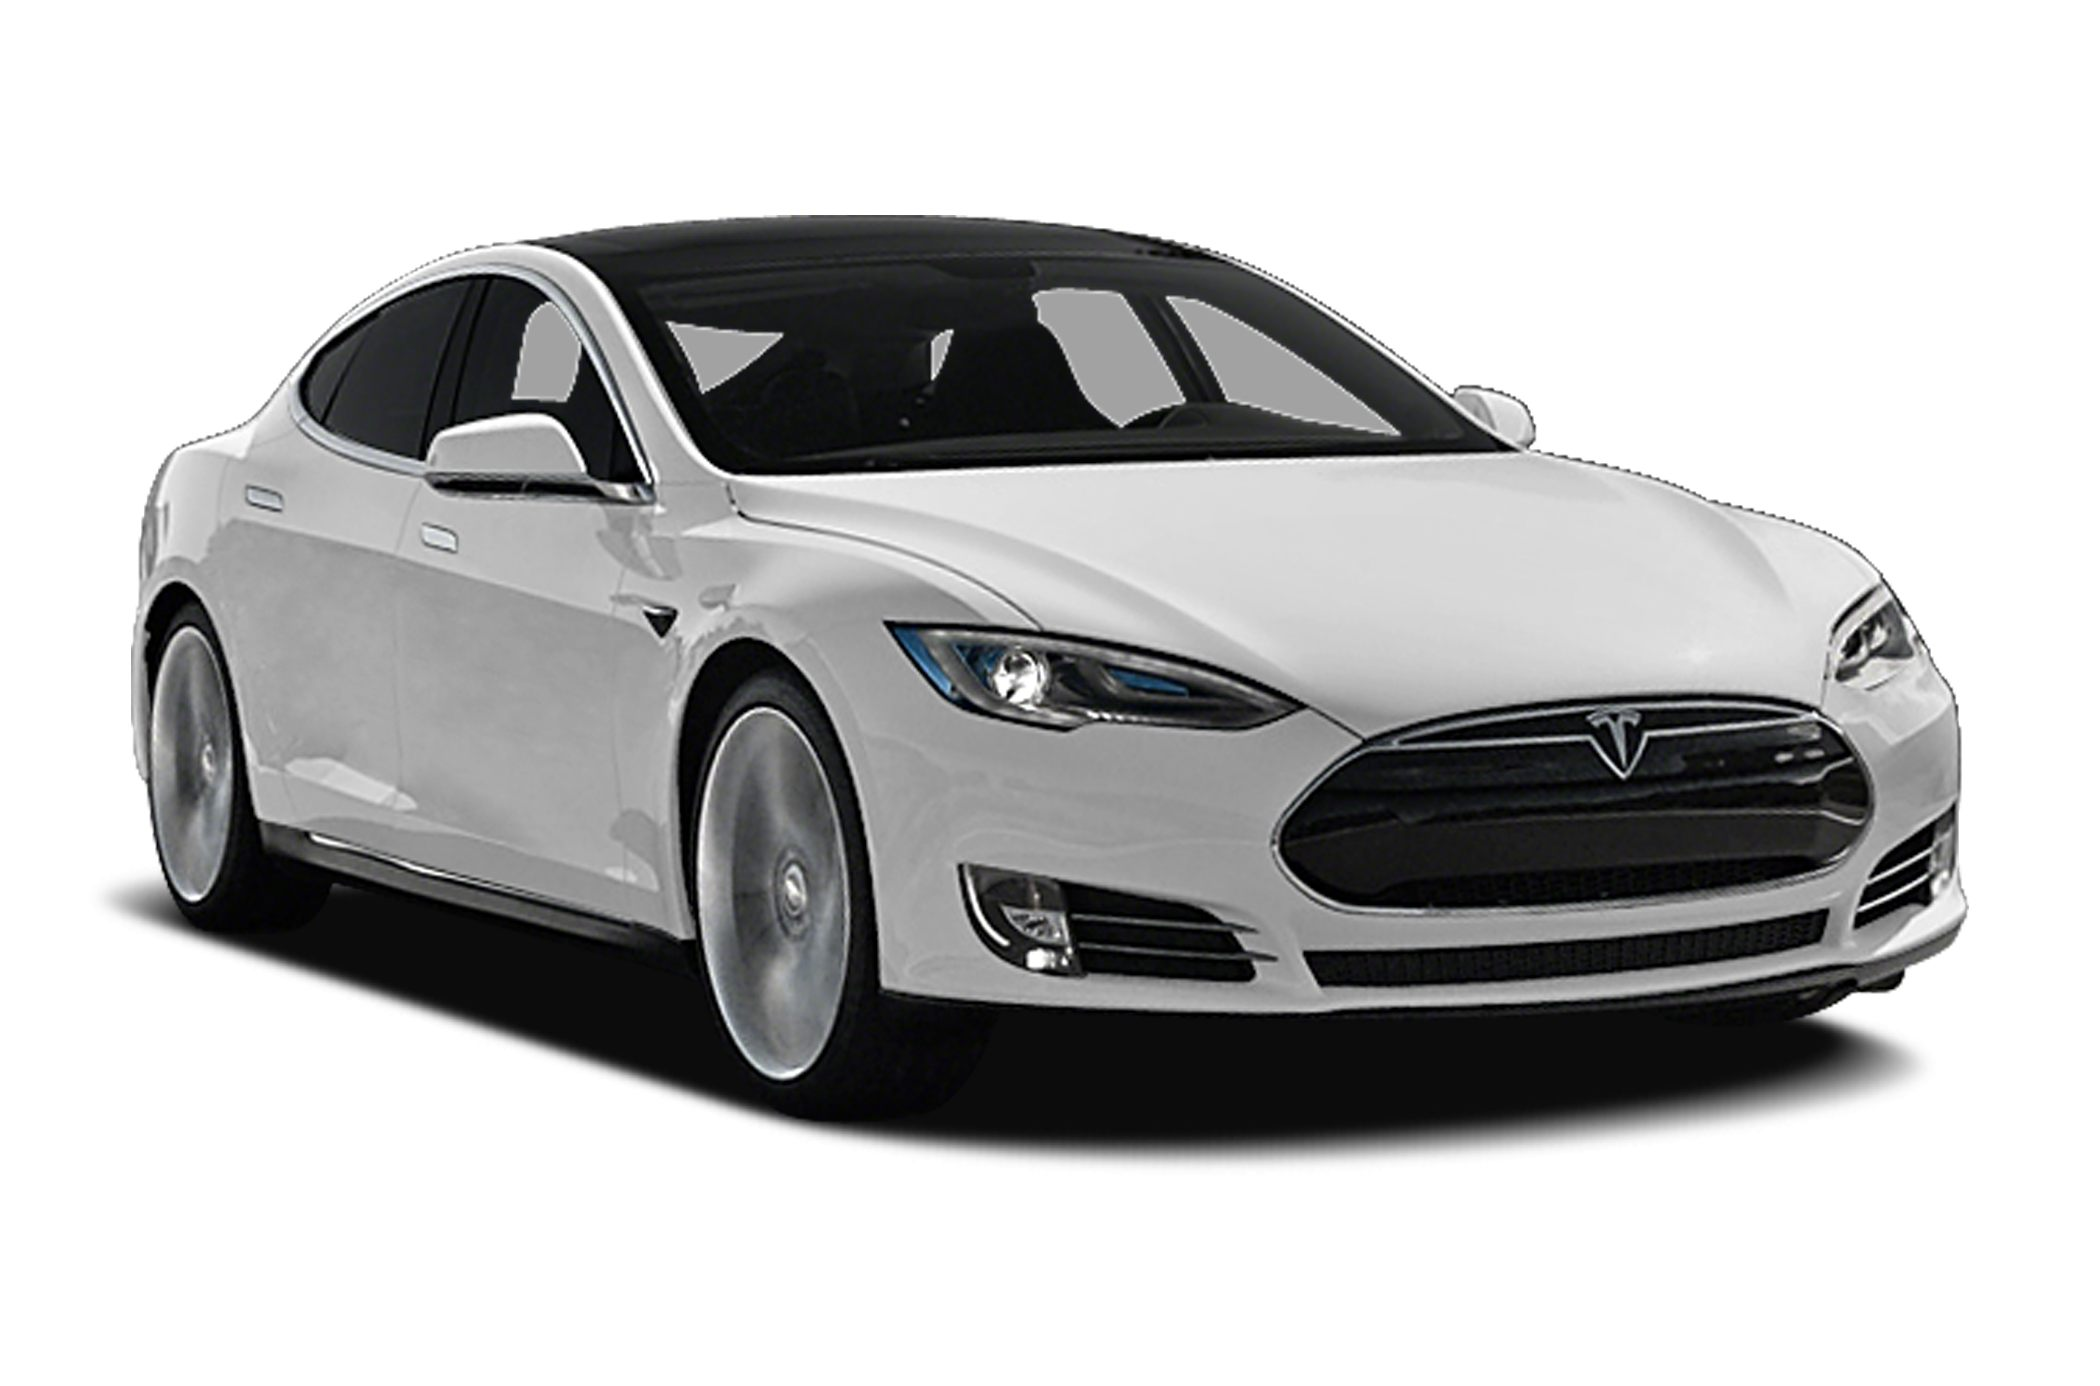 2012 Tesla Model S